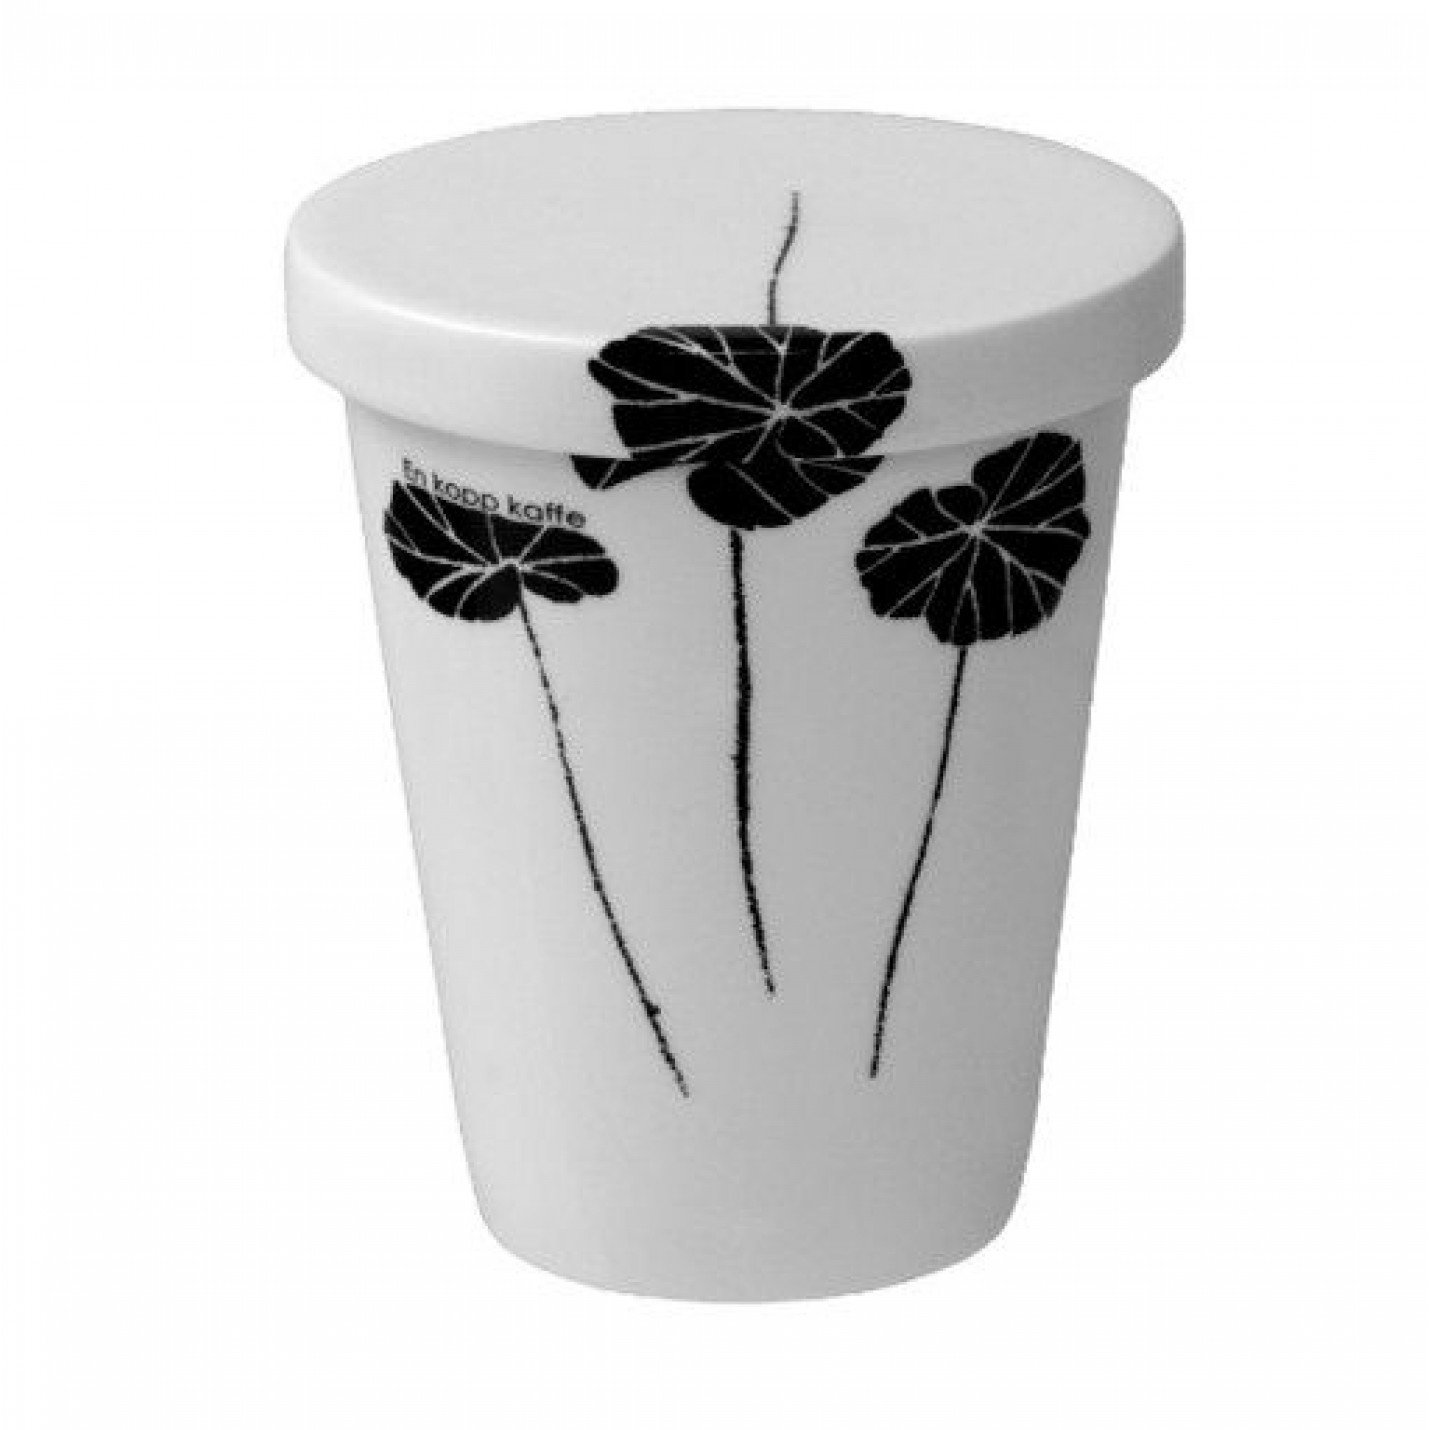 Take Away Cup with Plate/lid 40cl Black & White Leafs